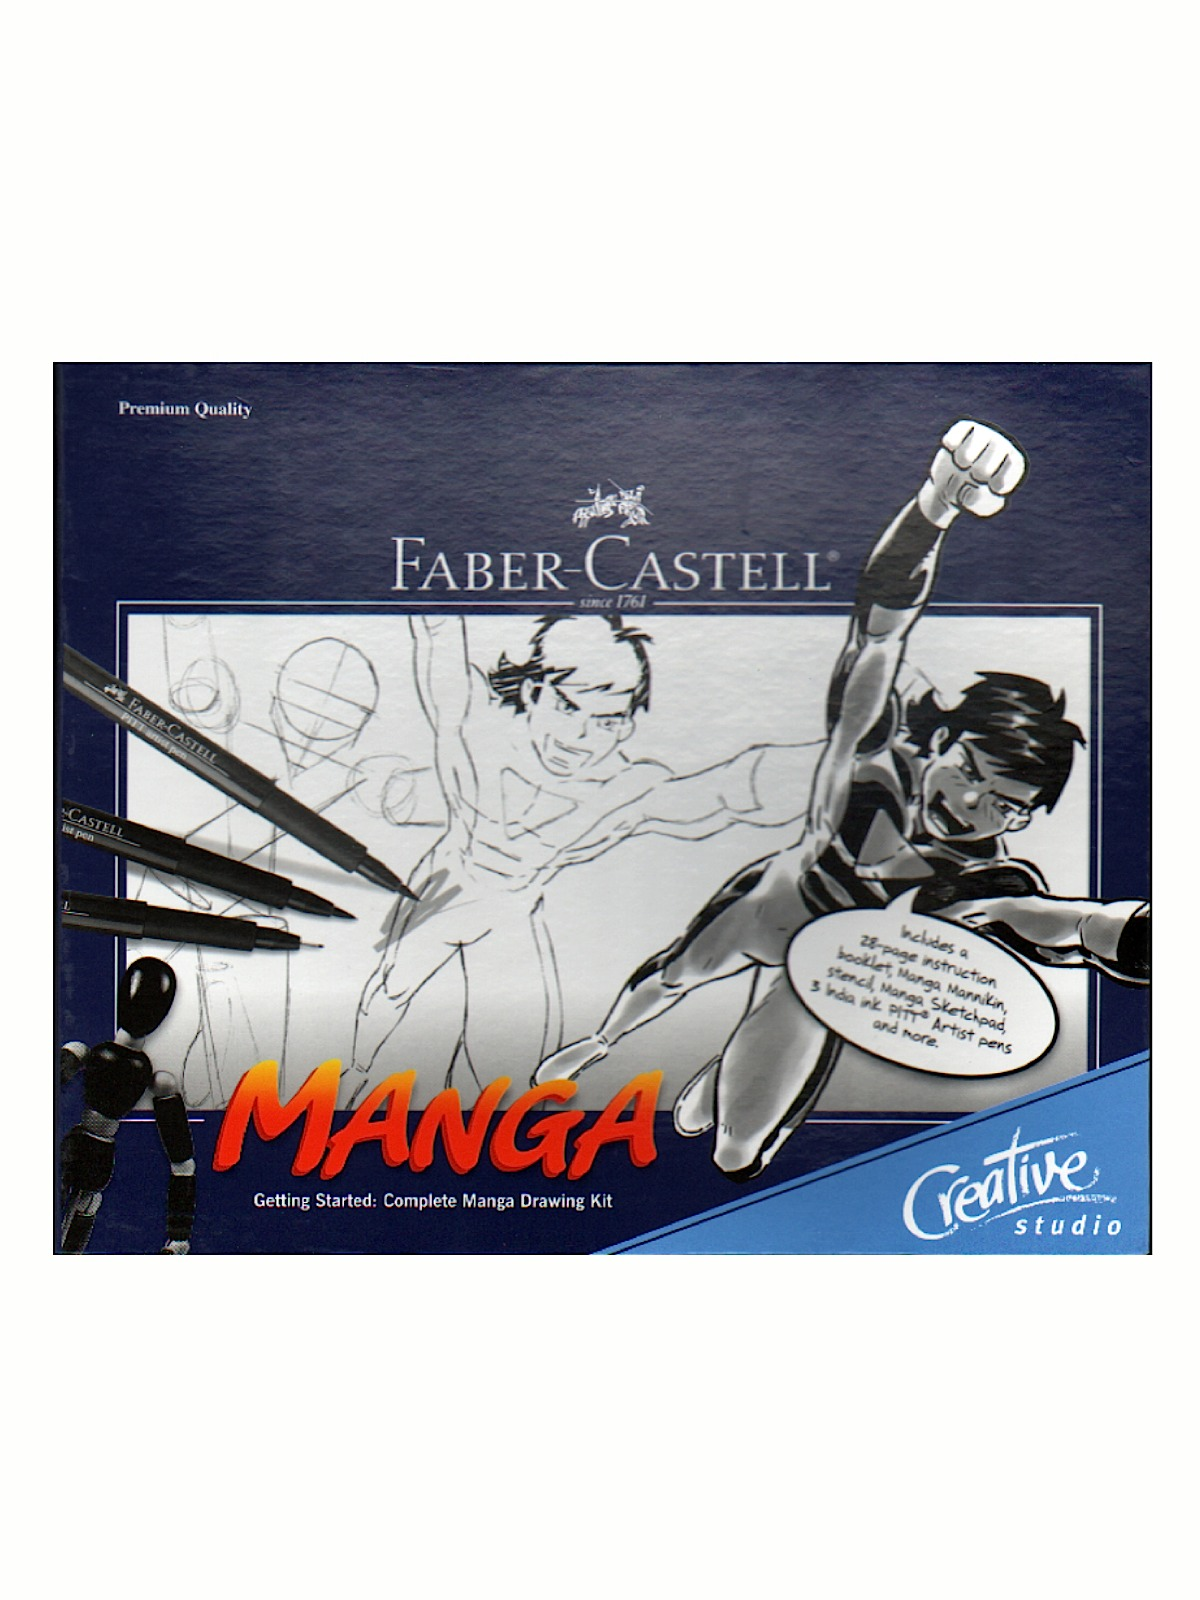 Complete Manga Drawing Kit